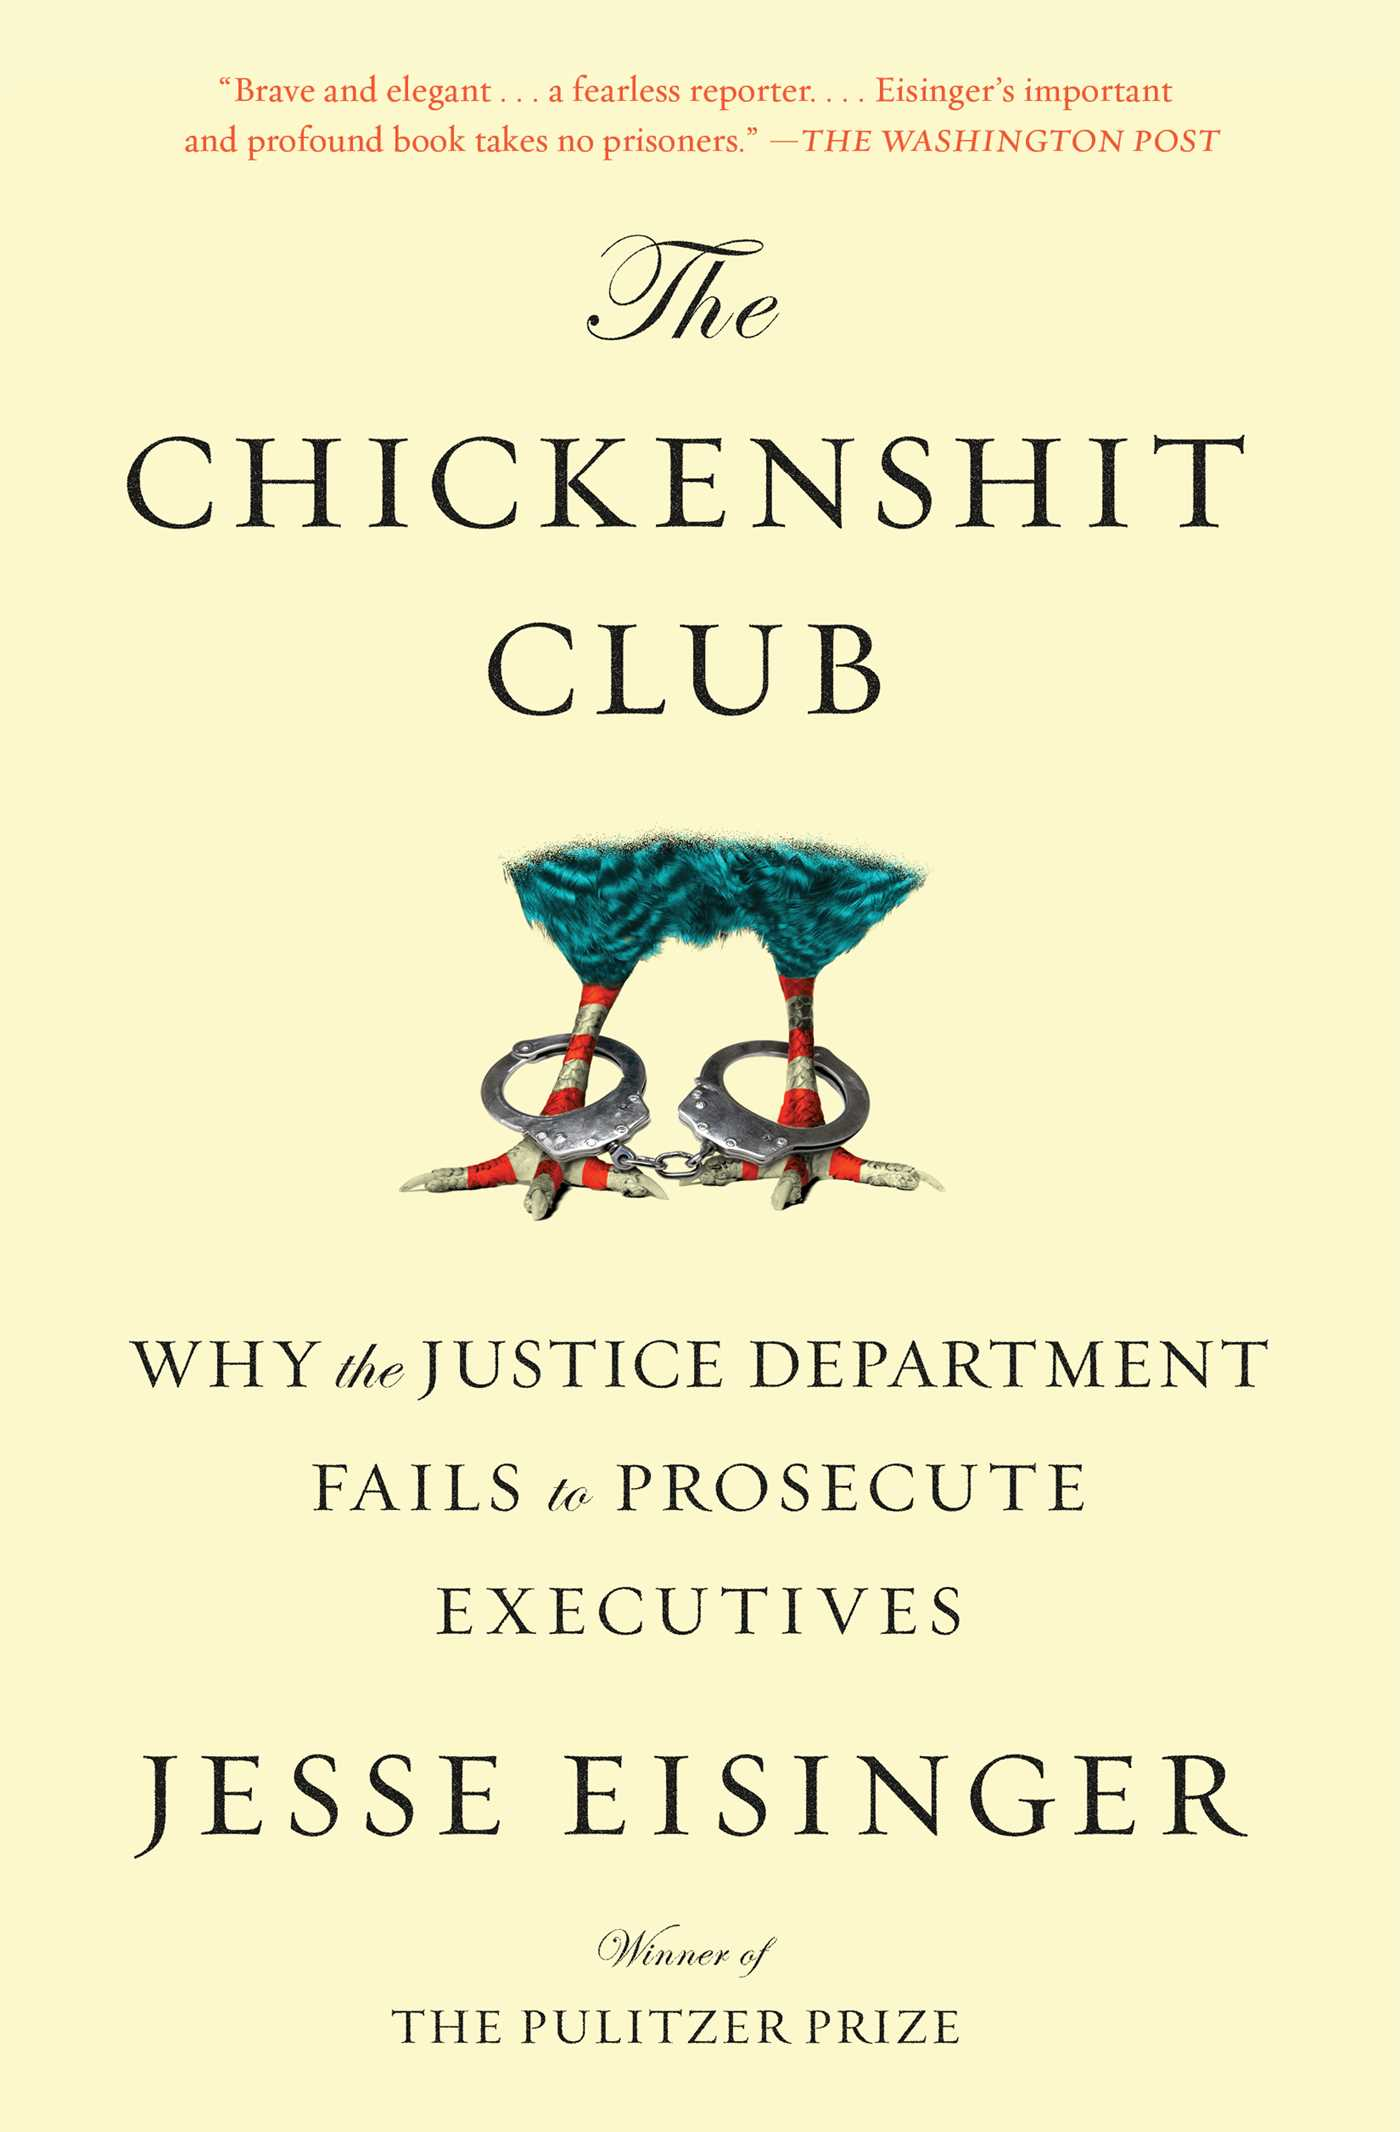 The chickenshit club book by jesse eisinger official publisher the chickenshit club book by jesse eisinger official publisher page simon schuster ccuart Choice Image